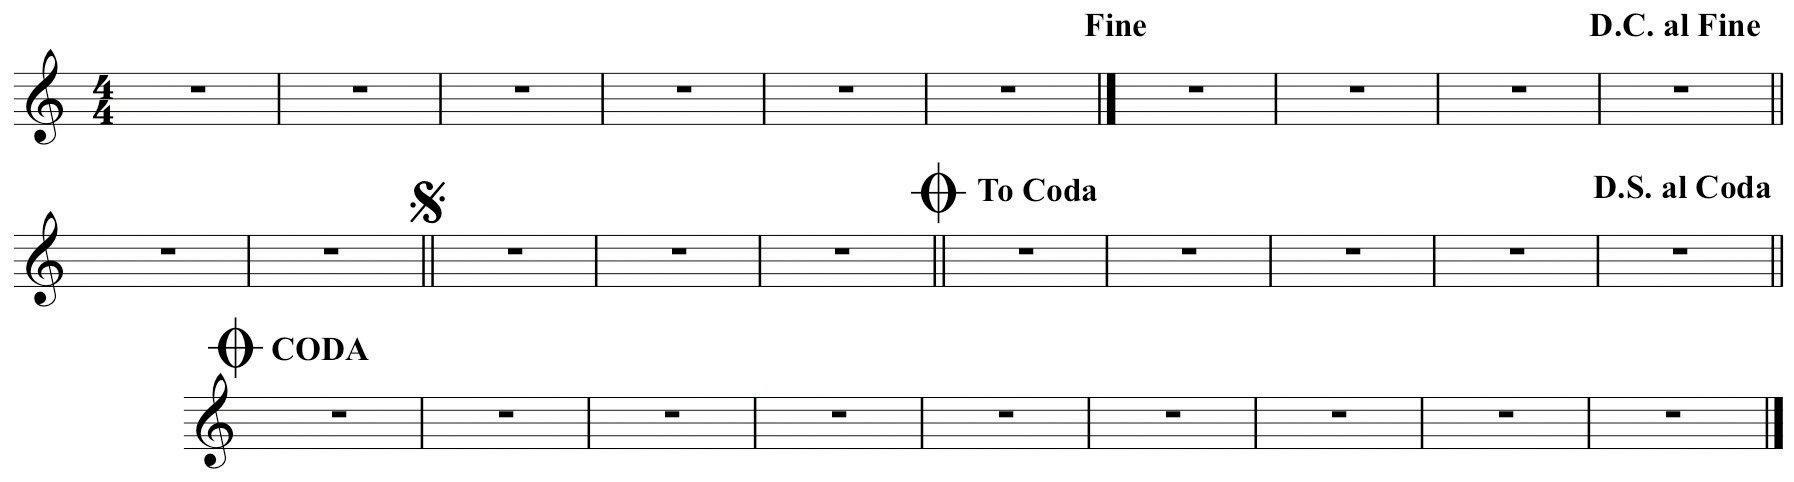 Music Notation Practices